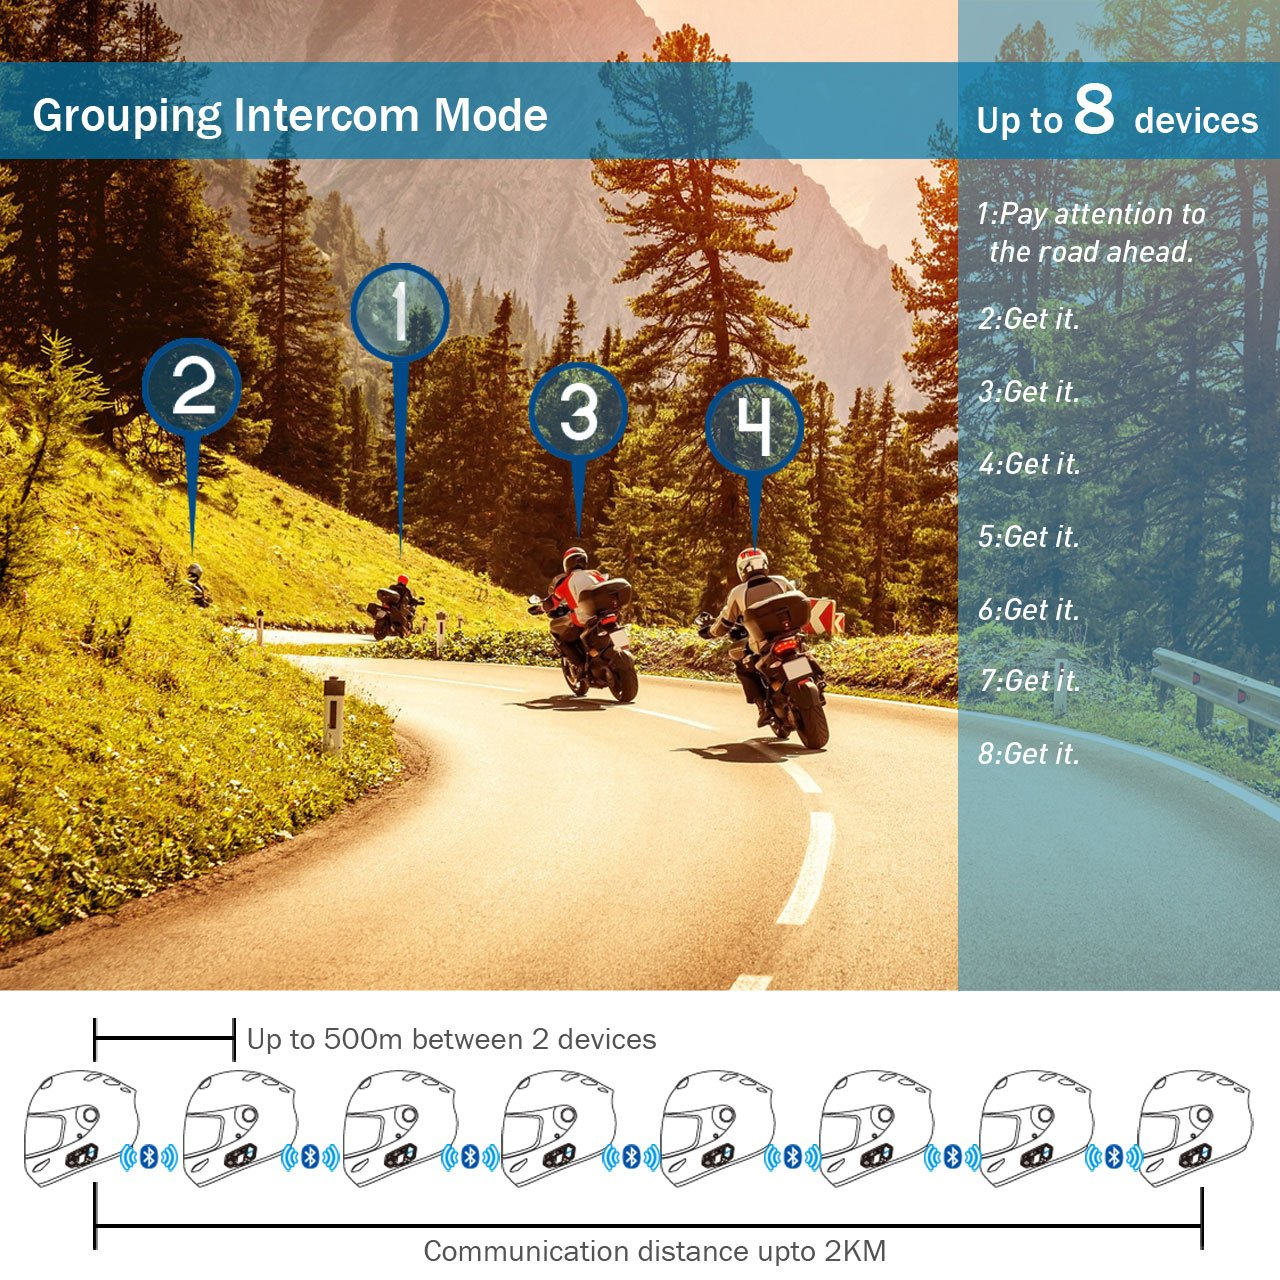 Motorcycle Bluetooth 4.1 Helmet Headset and Intercom Communication Systems Kit, Supports 8 riders group intercom, Handsfree Calls Voice Command 12hrs with Speakers headphones for Motorbike Skiing by BIBENE (Image #5)